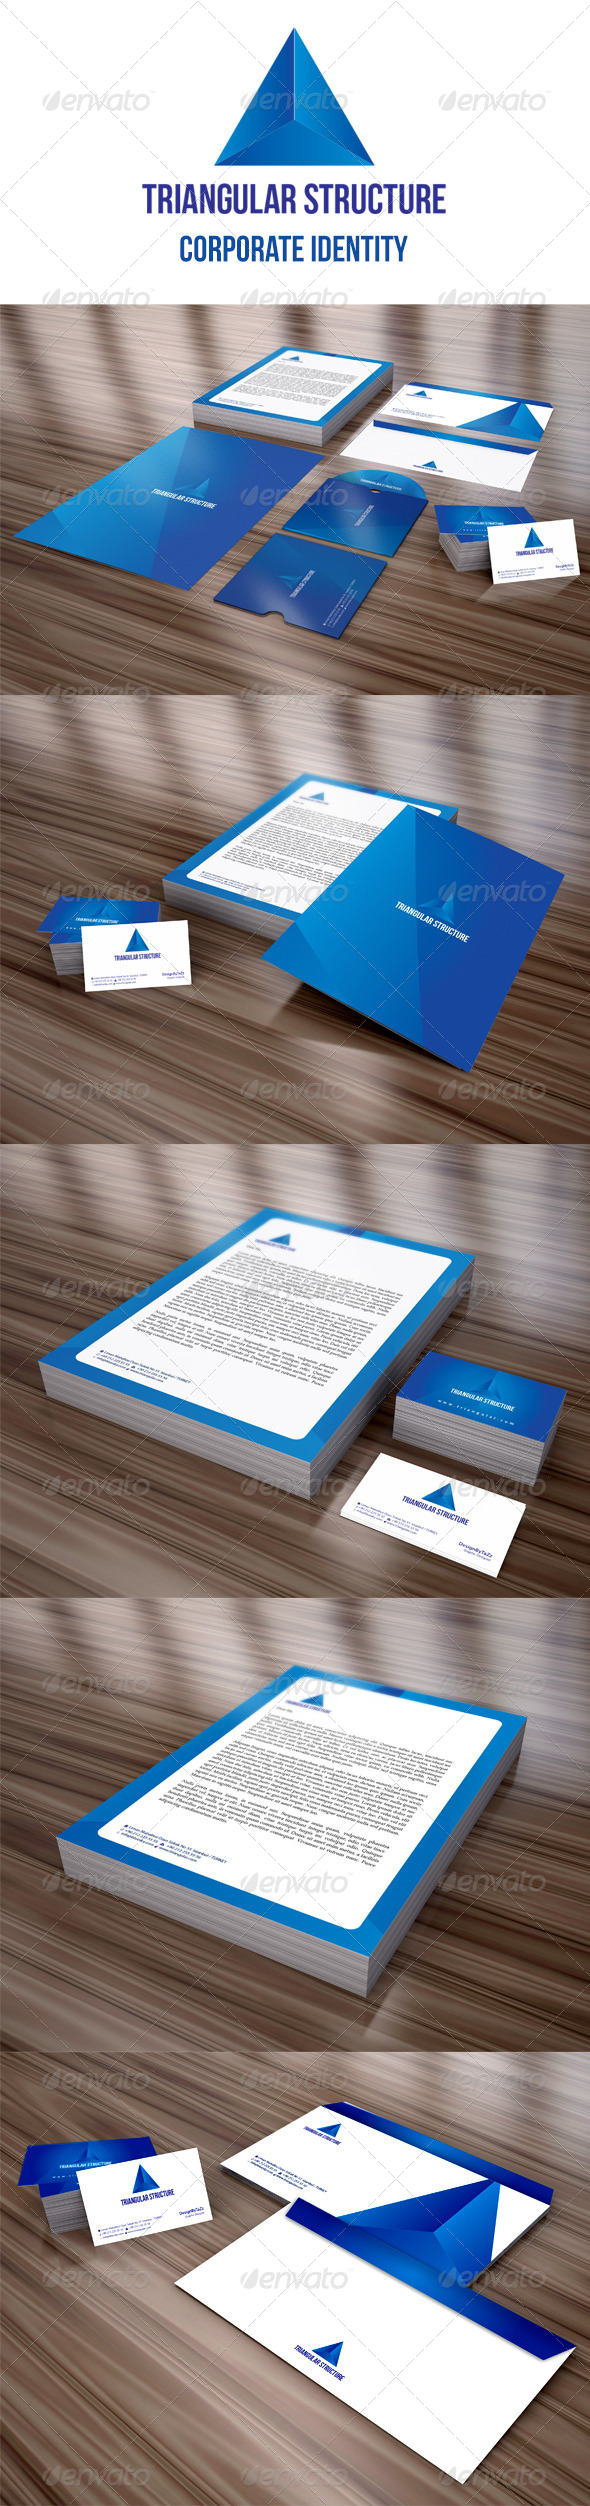 GraphicRiver Triangular Structure Corporate Identity Package 4063957